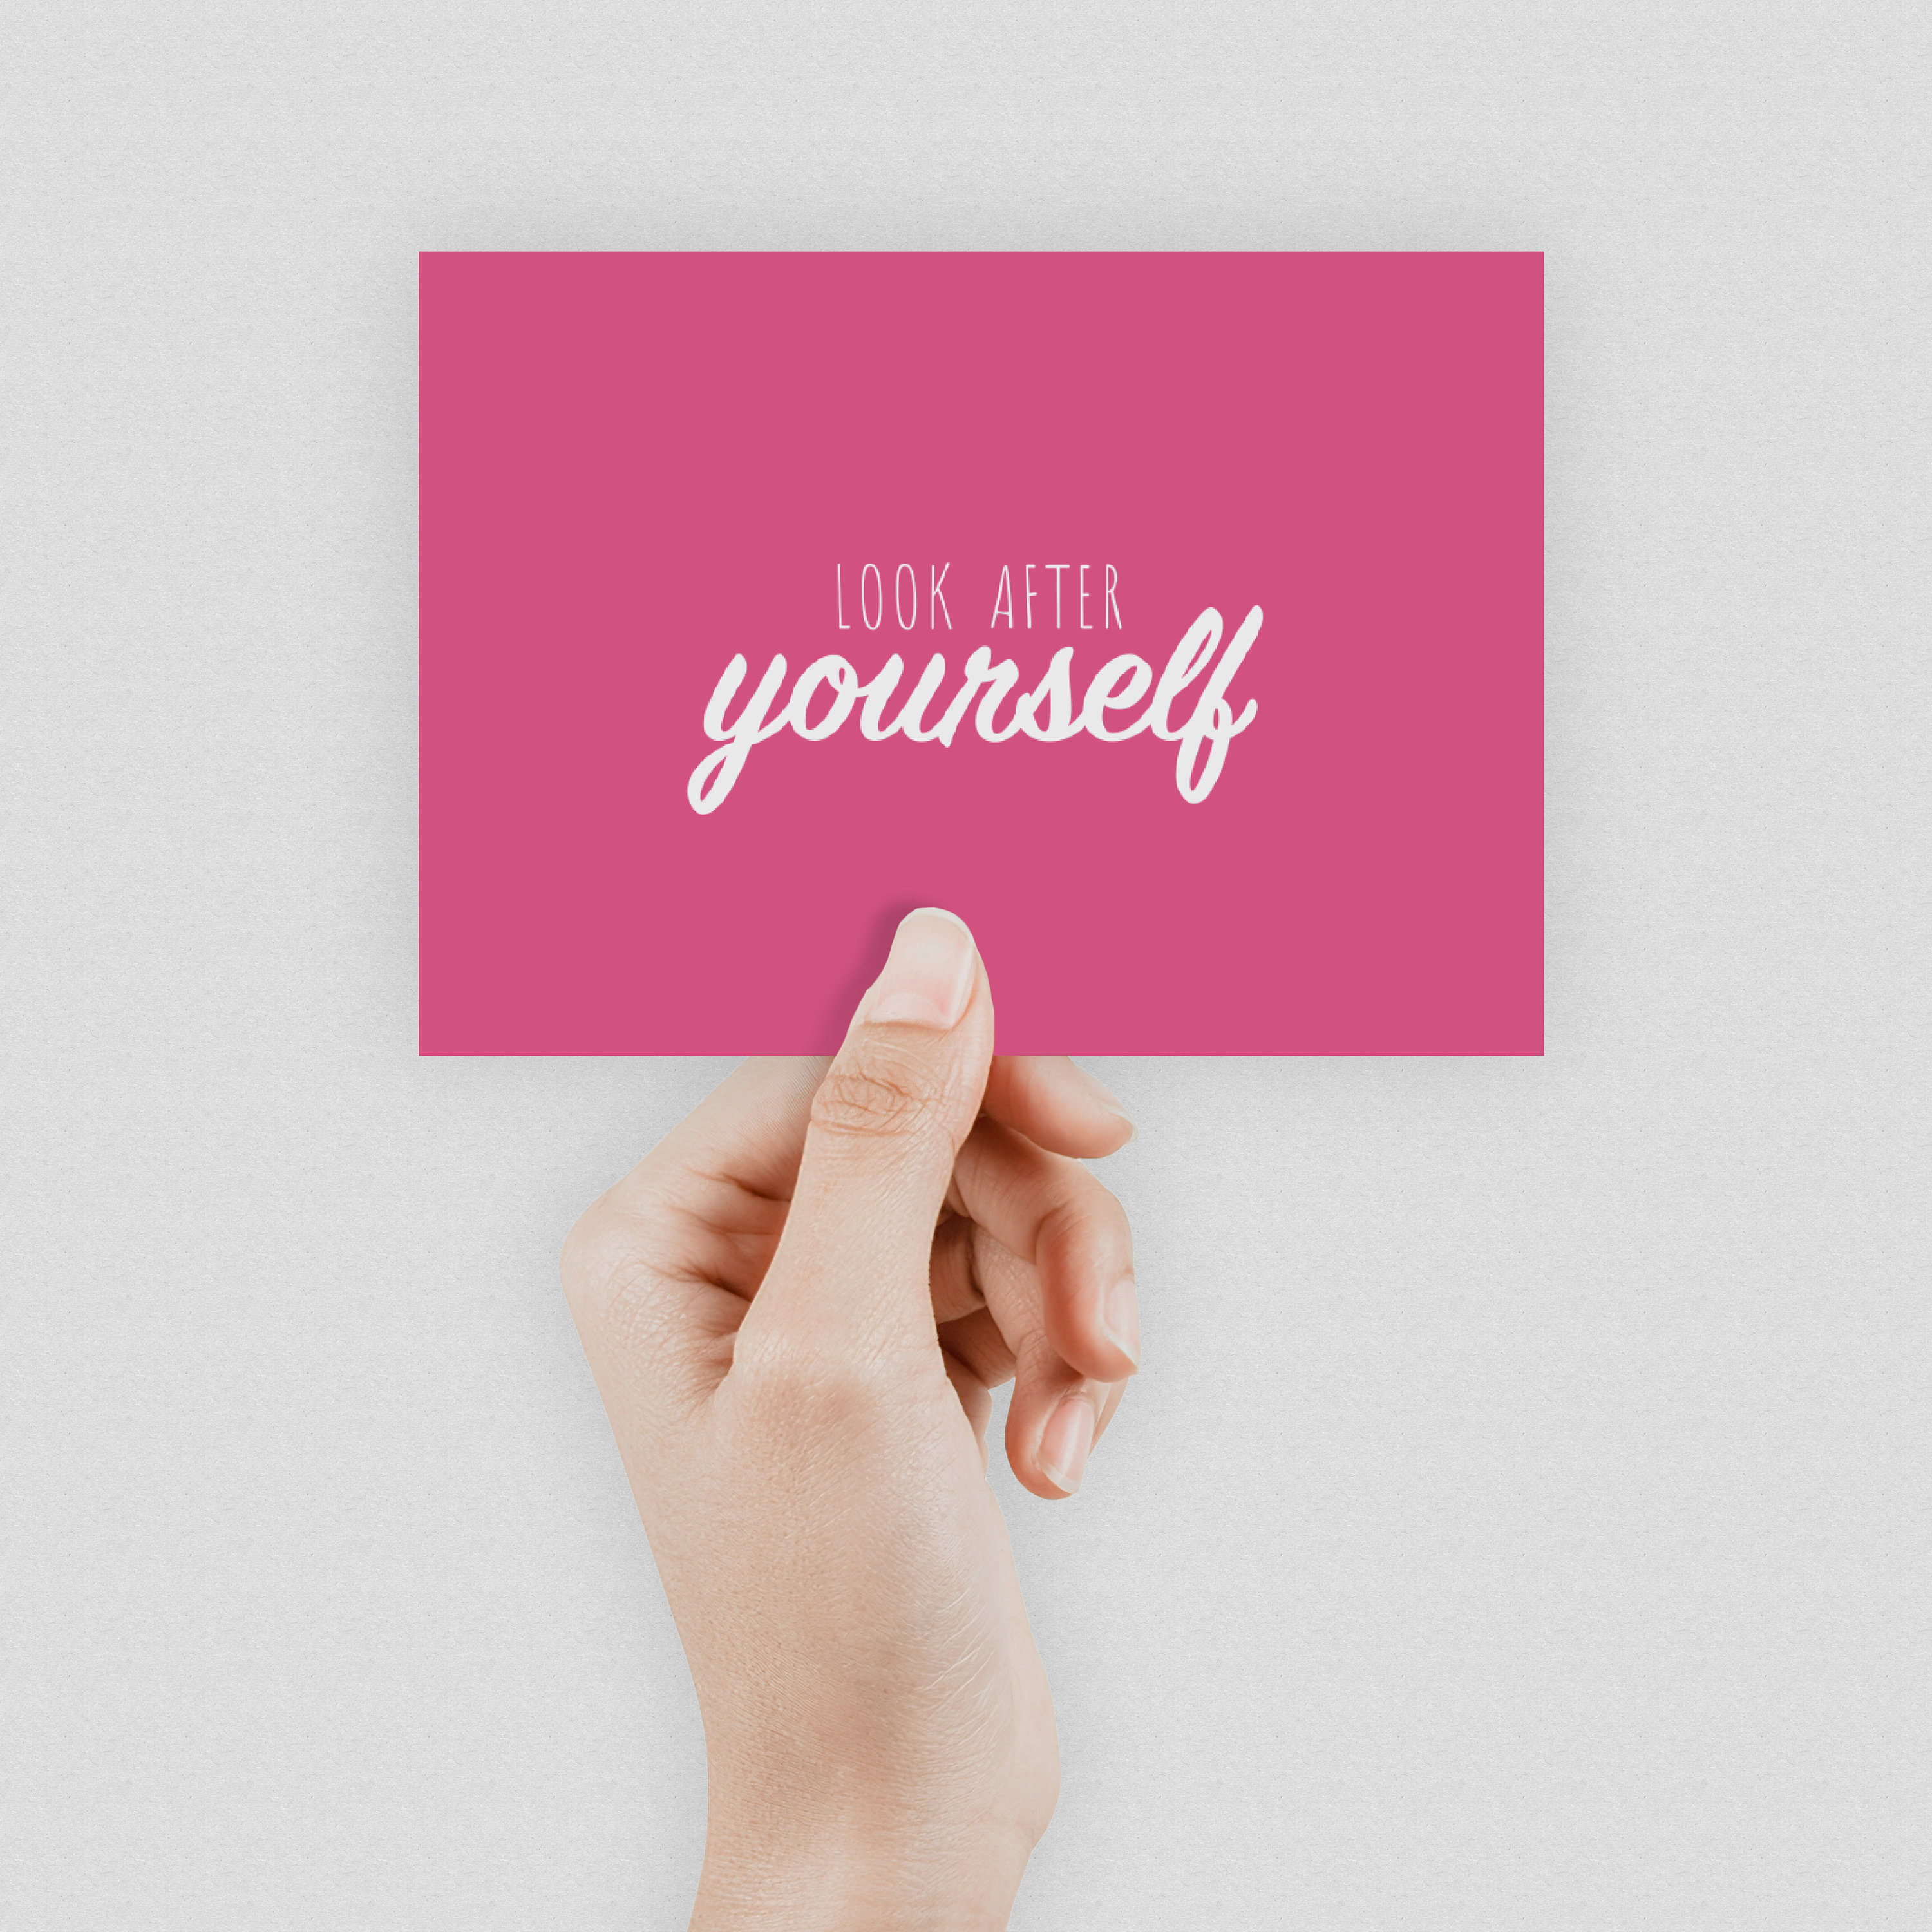 """A hand holding a bright pink postcard which says """"Look after yourself"""" in the middle"""